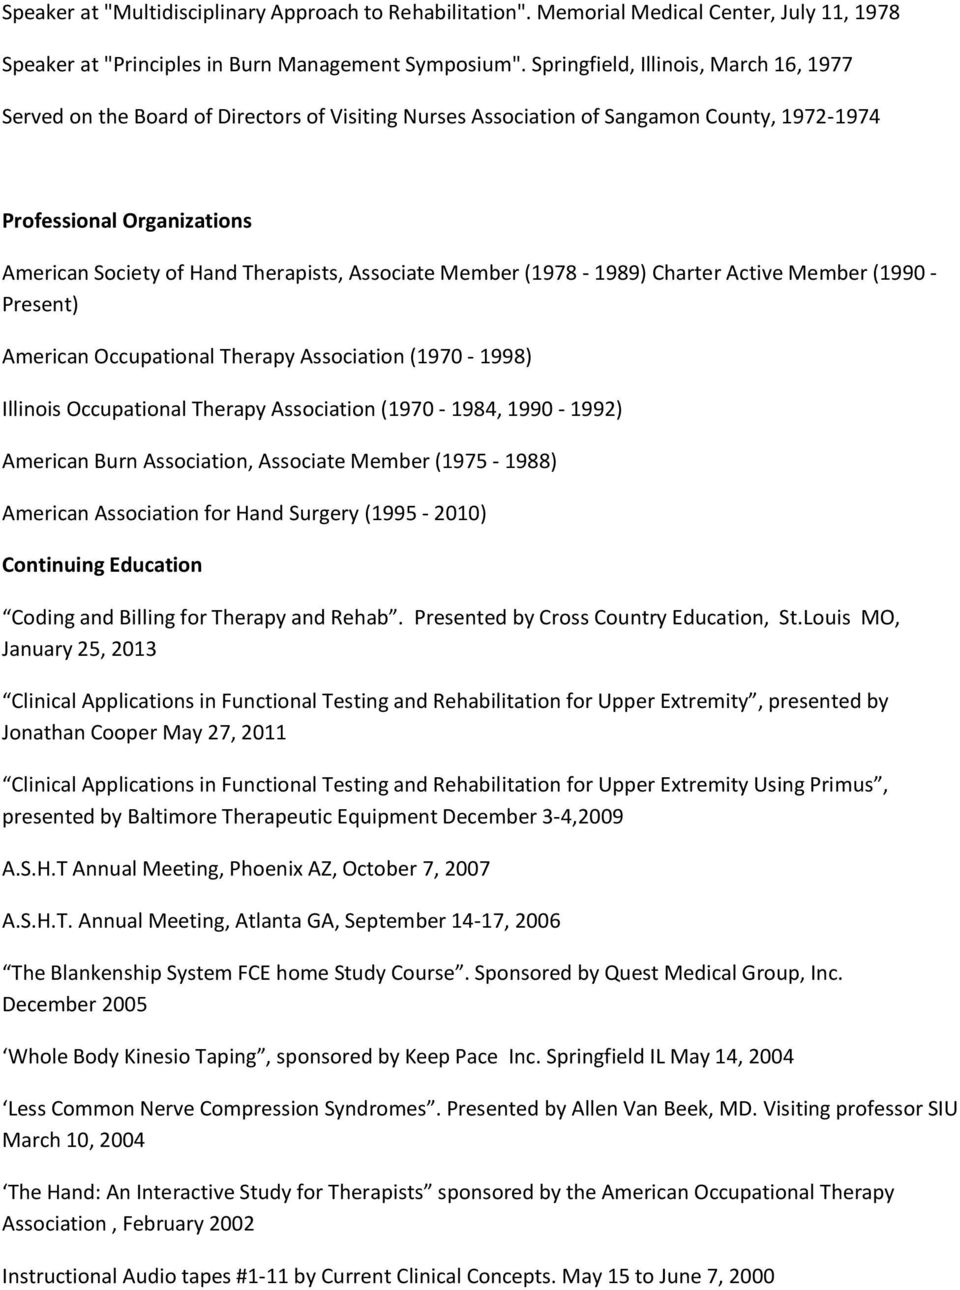 Associate Member (1978-1989) Charter Active Member (1990 - Present) American Occupational Therapy Association (1970-1998) Illinois Occupational Therapy Association (1970-1984, 1990-1992) American